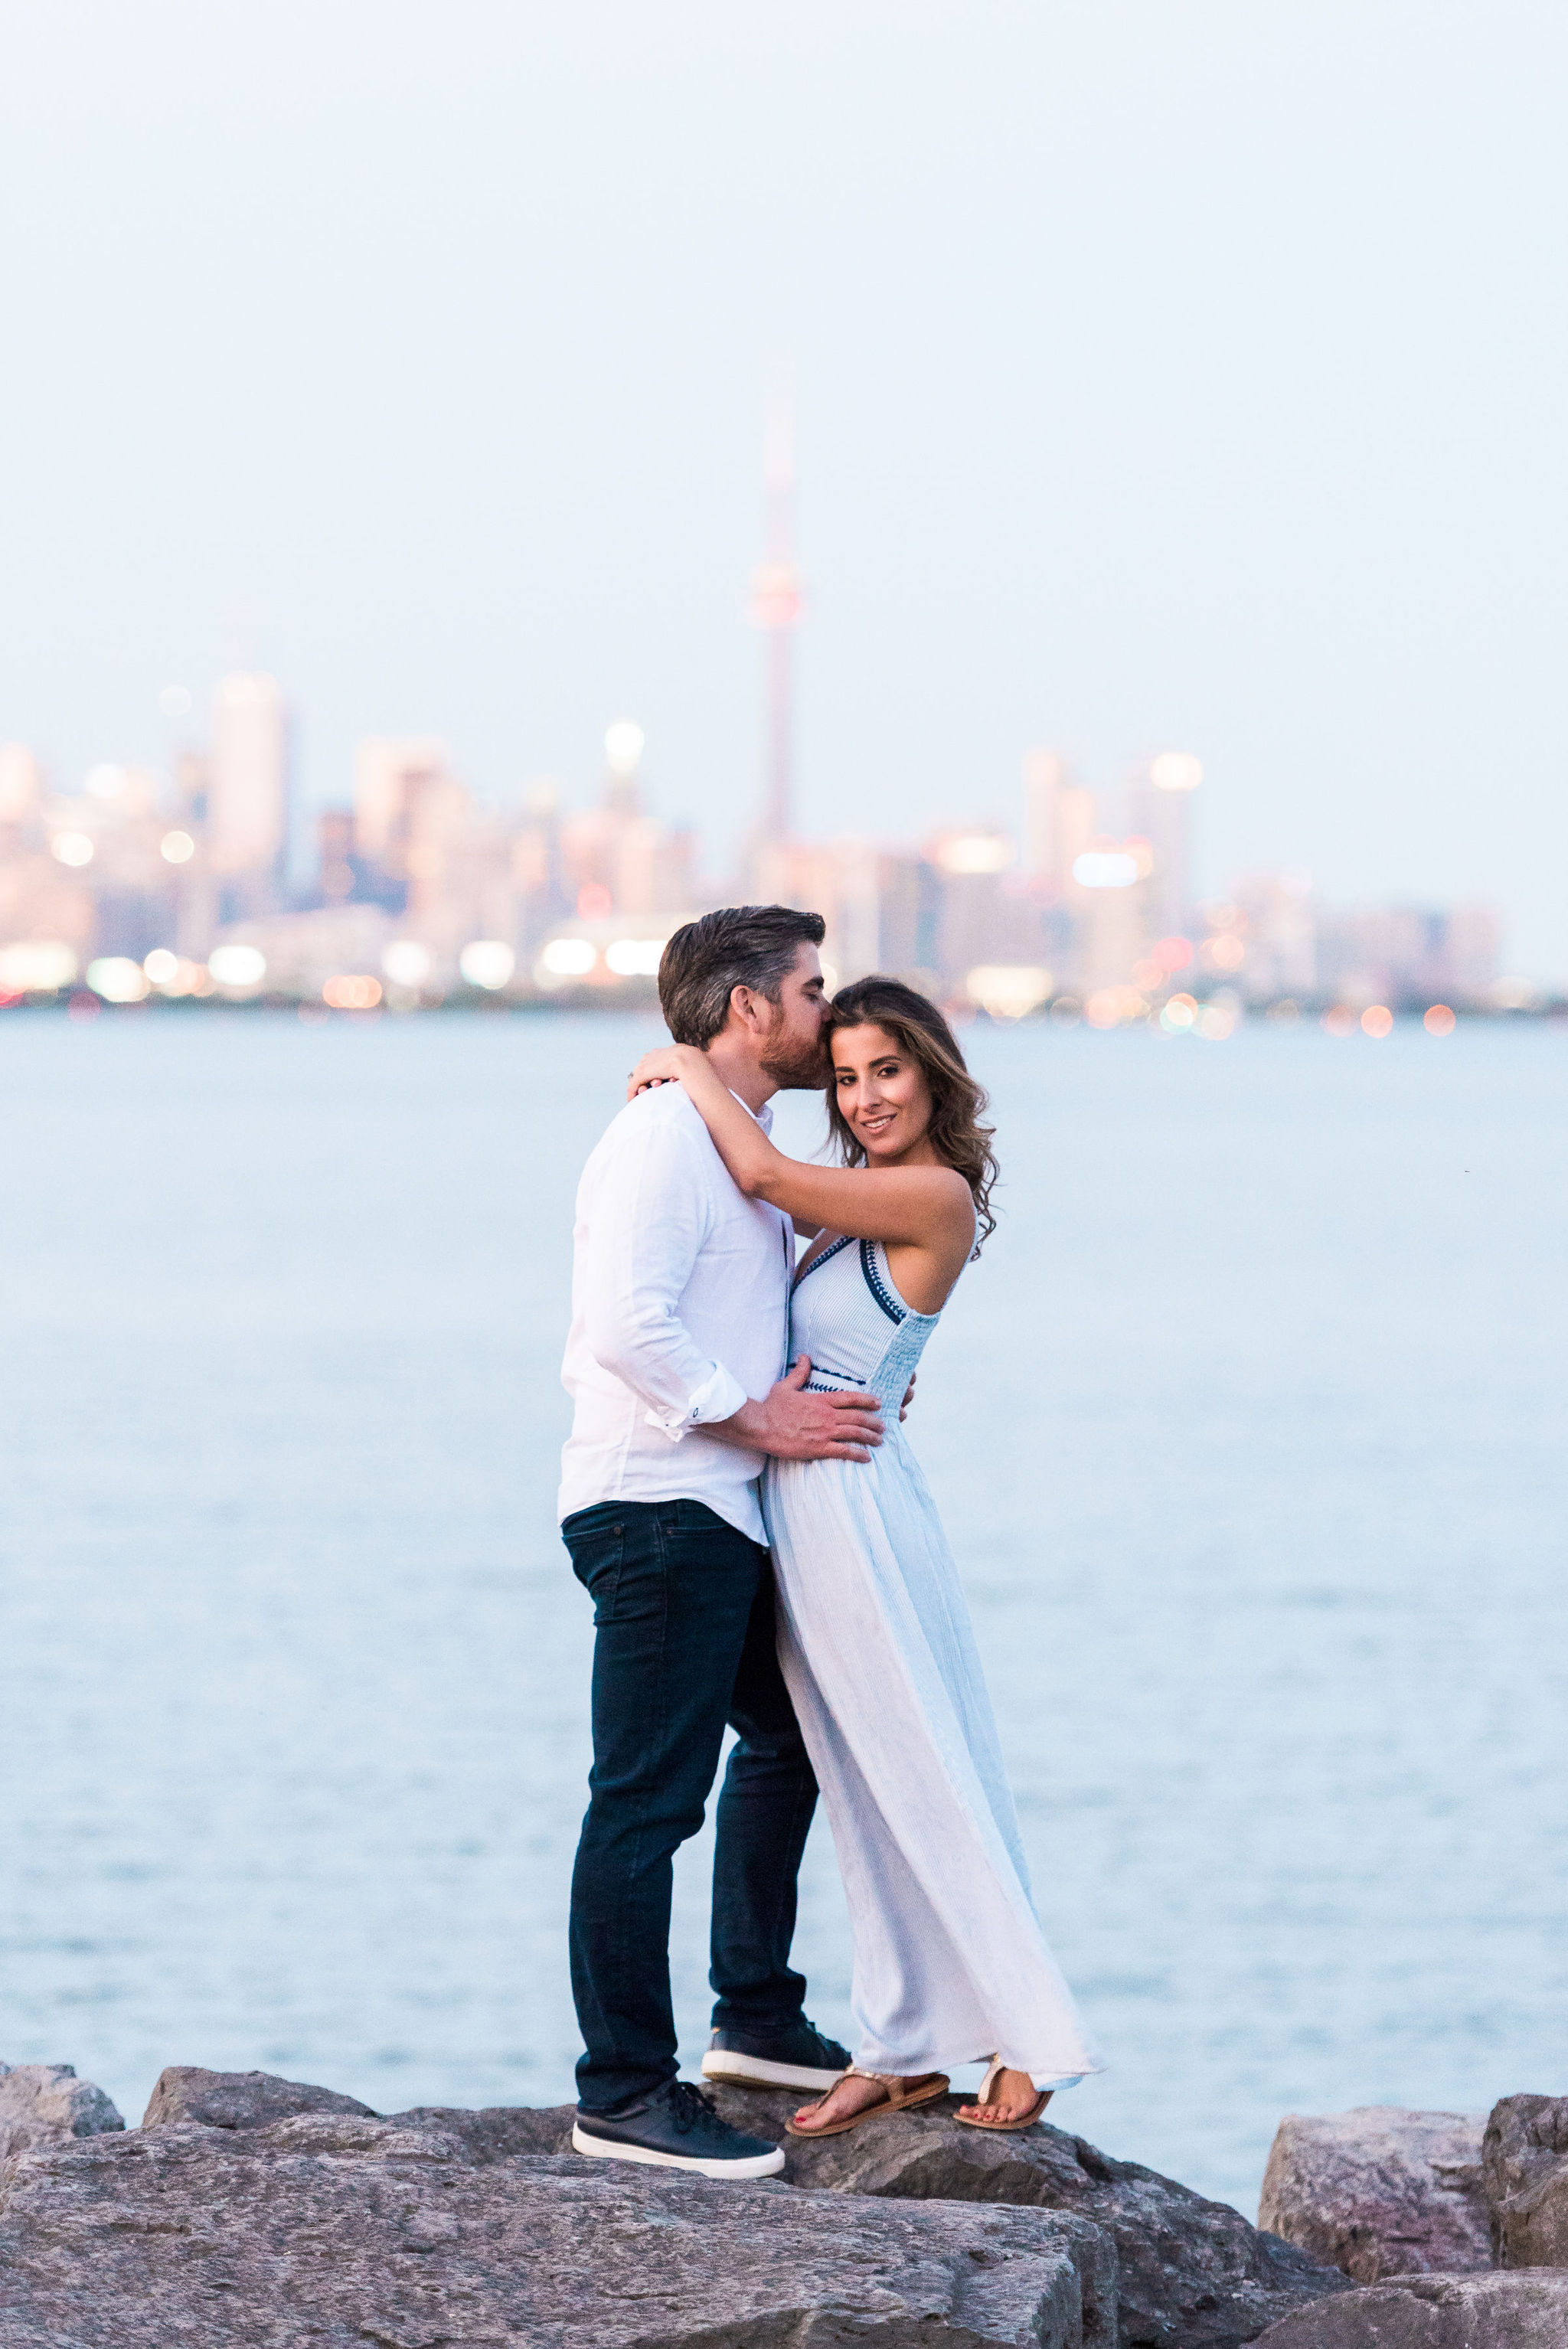 aline&brent_firstlook-29.jpg